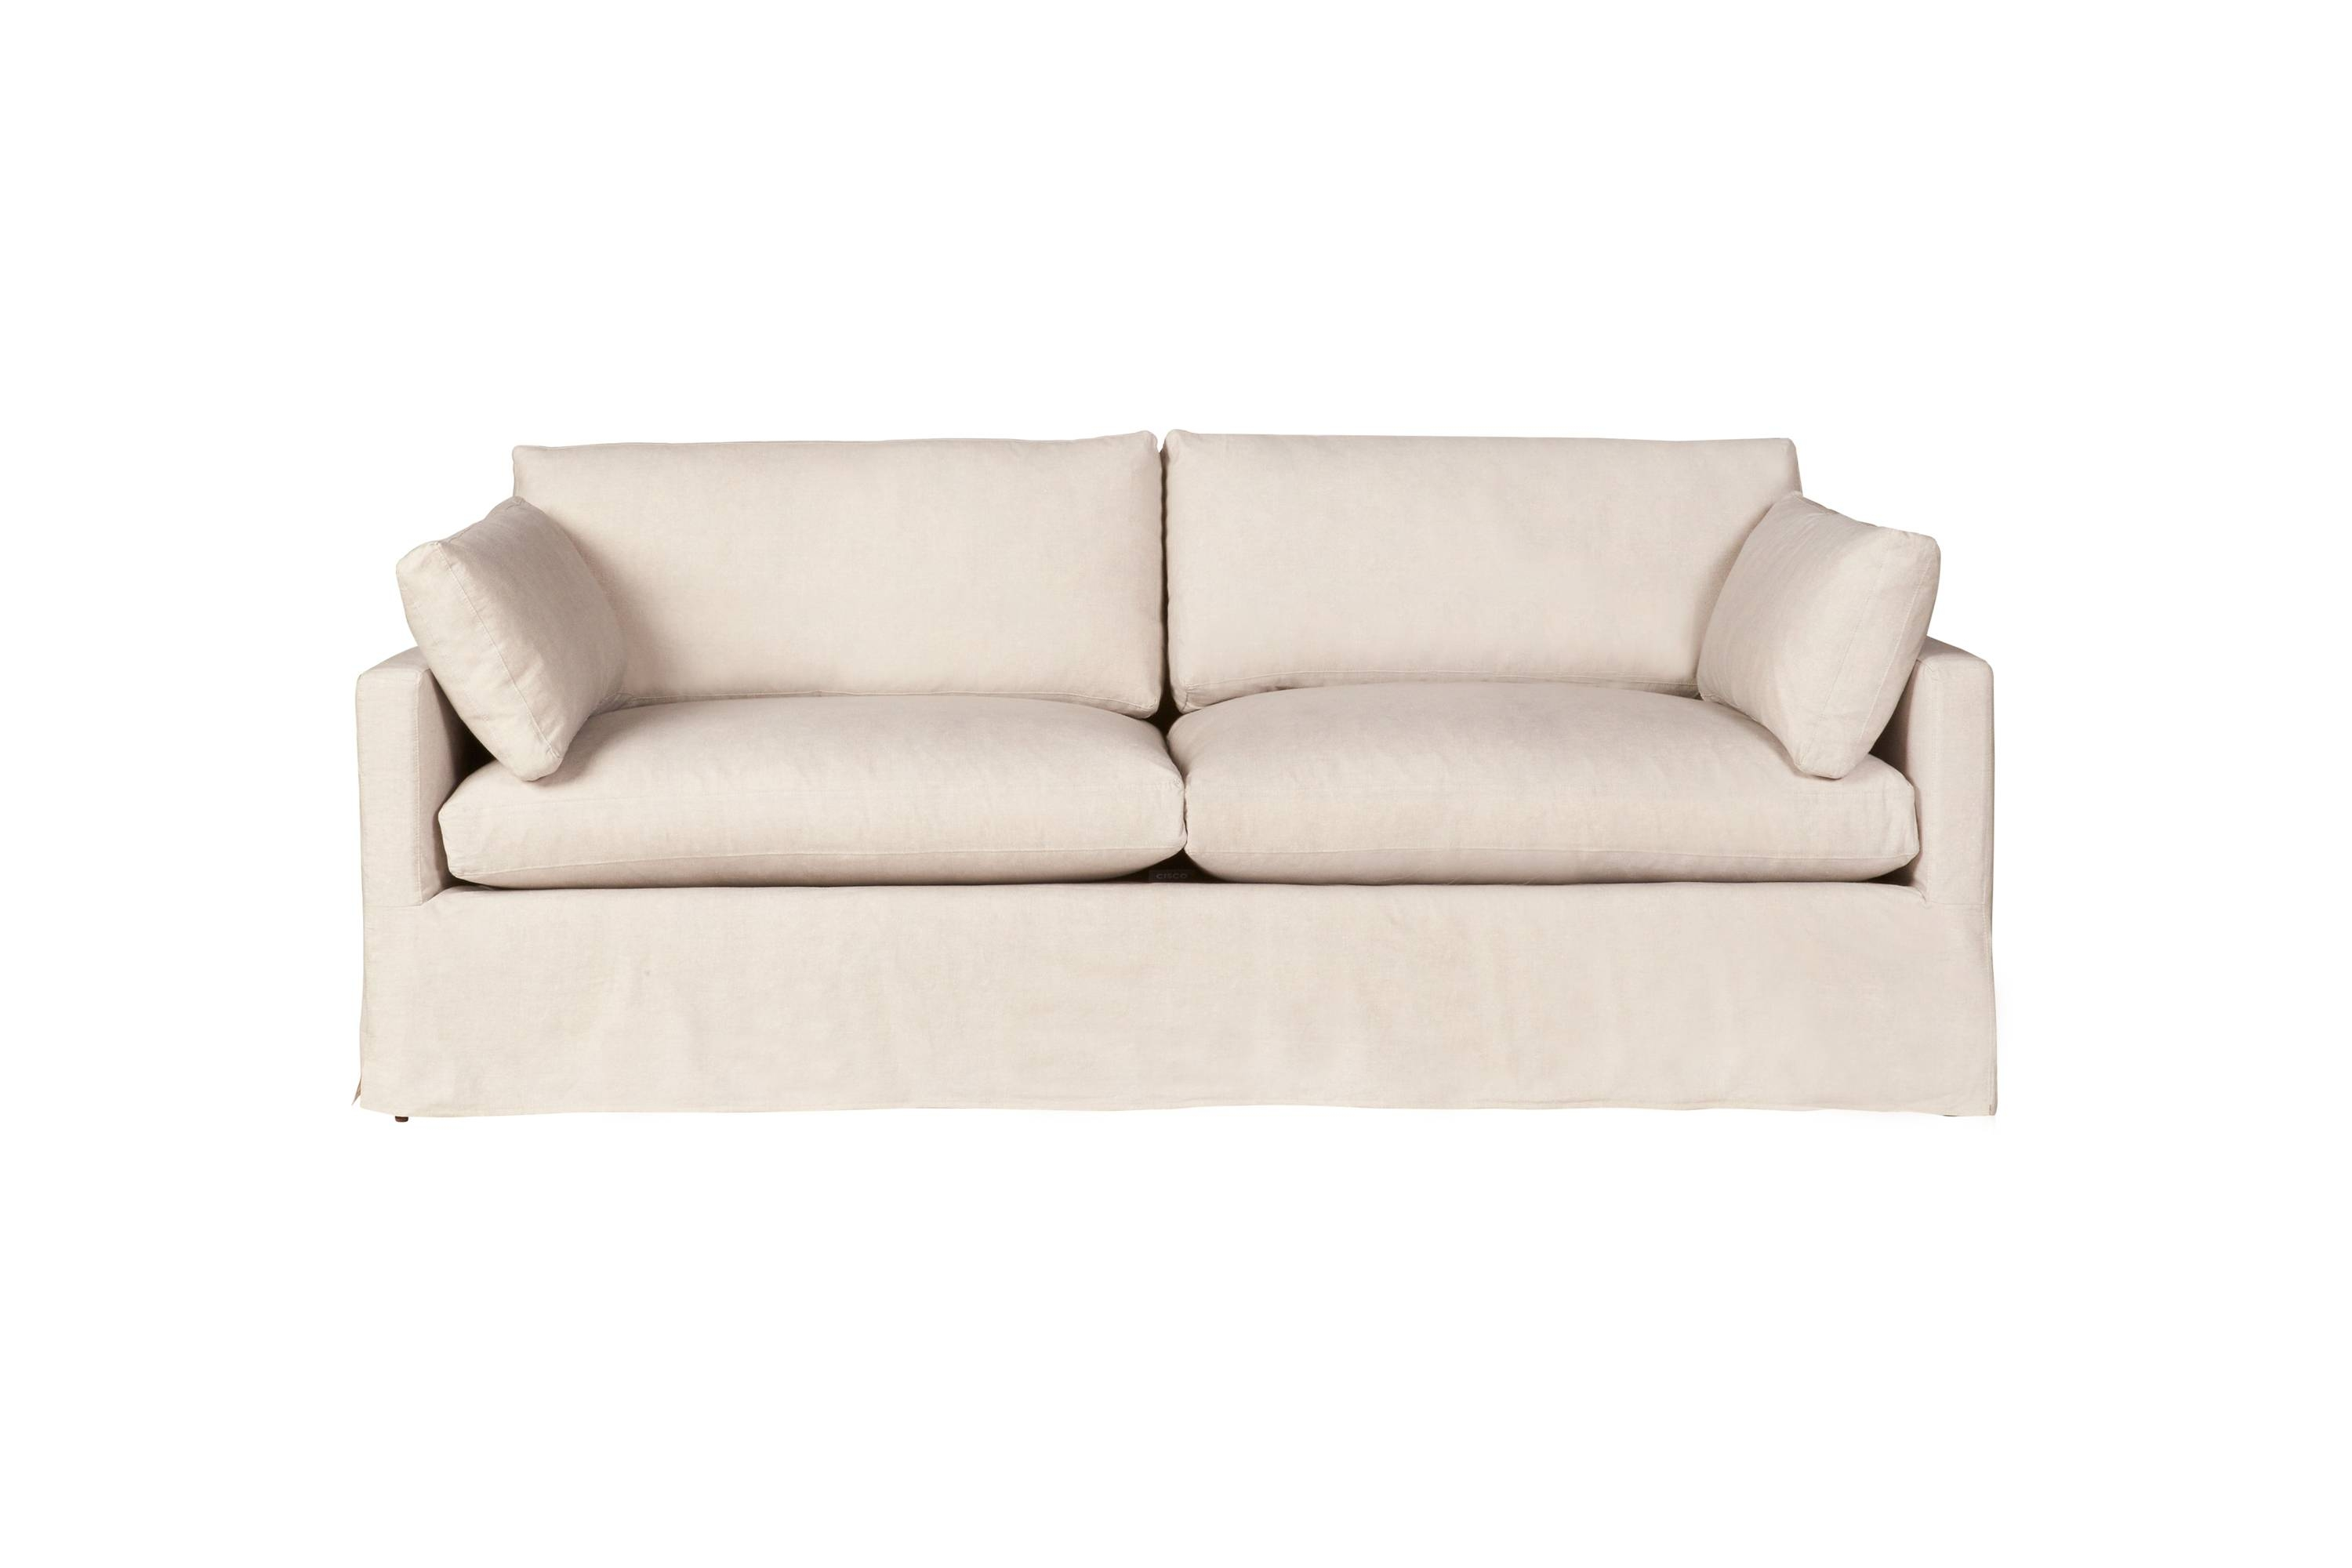 Sofas with Armless Sofa Slipcovers (Image 13 of 15)